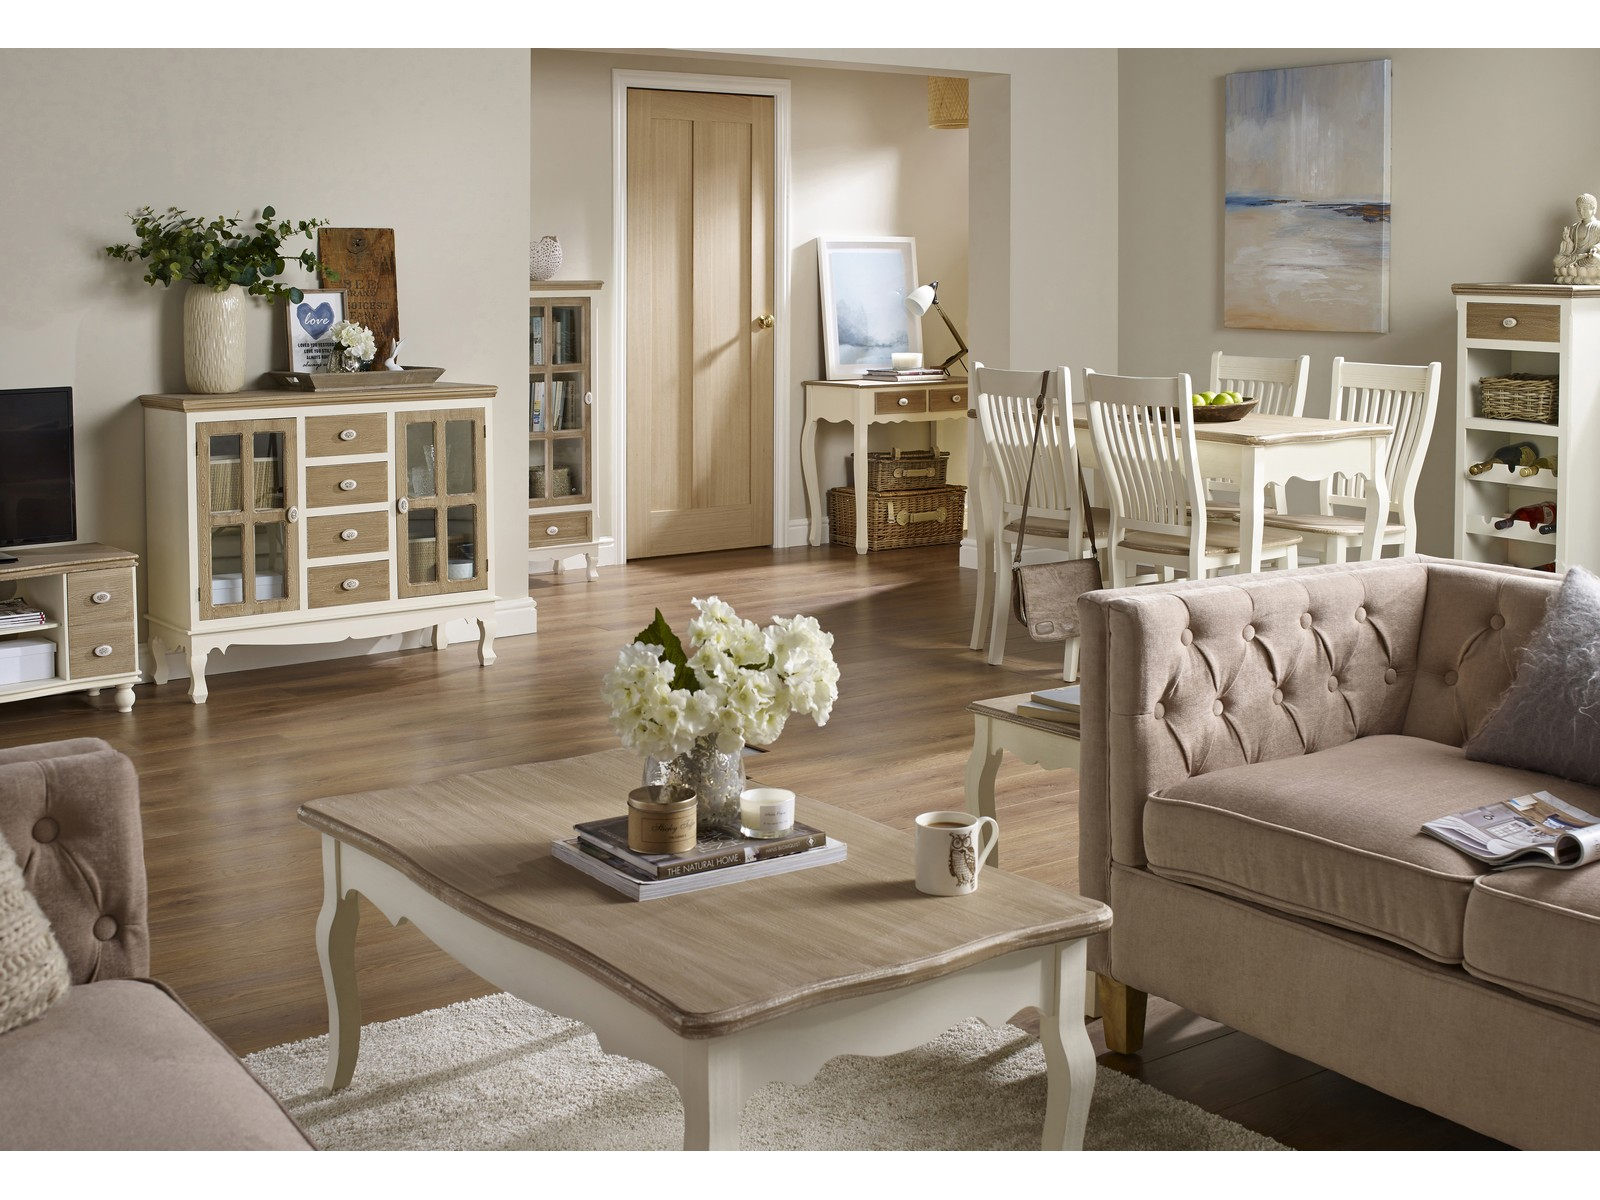 Juliette Cream Pine Living Room Furniture Tables Storage Cabinets with 10 Awesome Concepts of How to Craft Cream Living Room Set